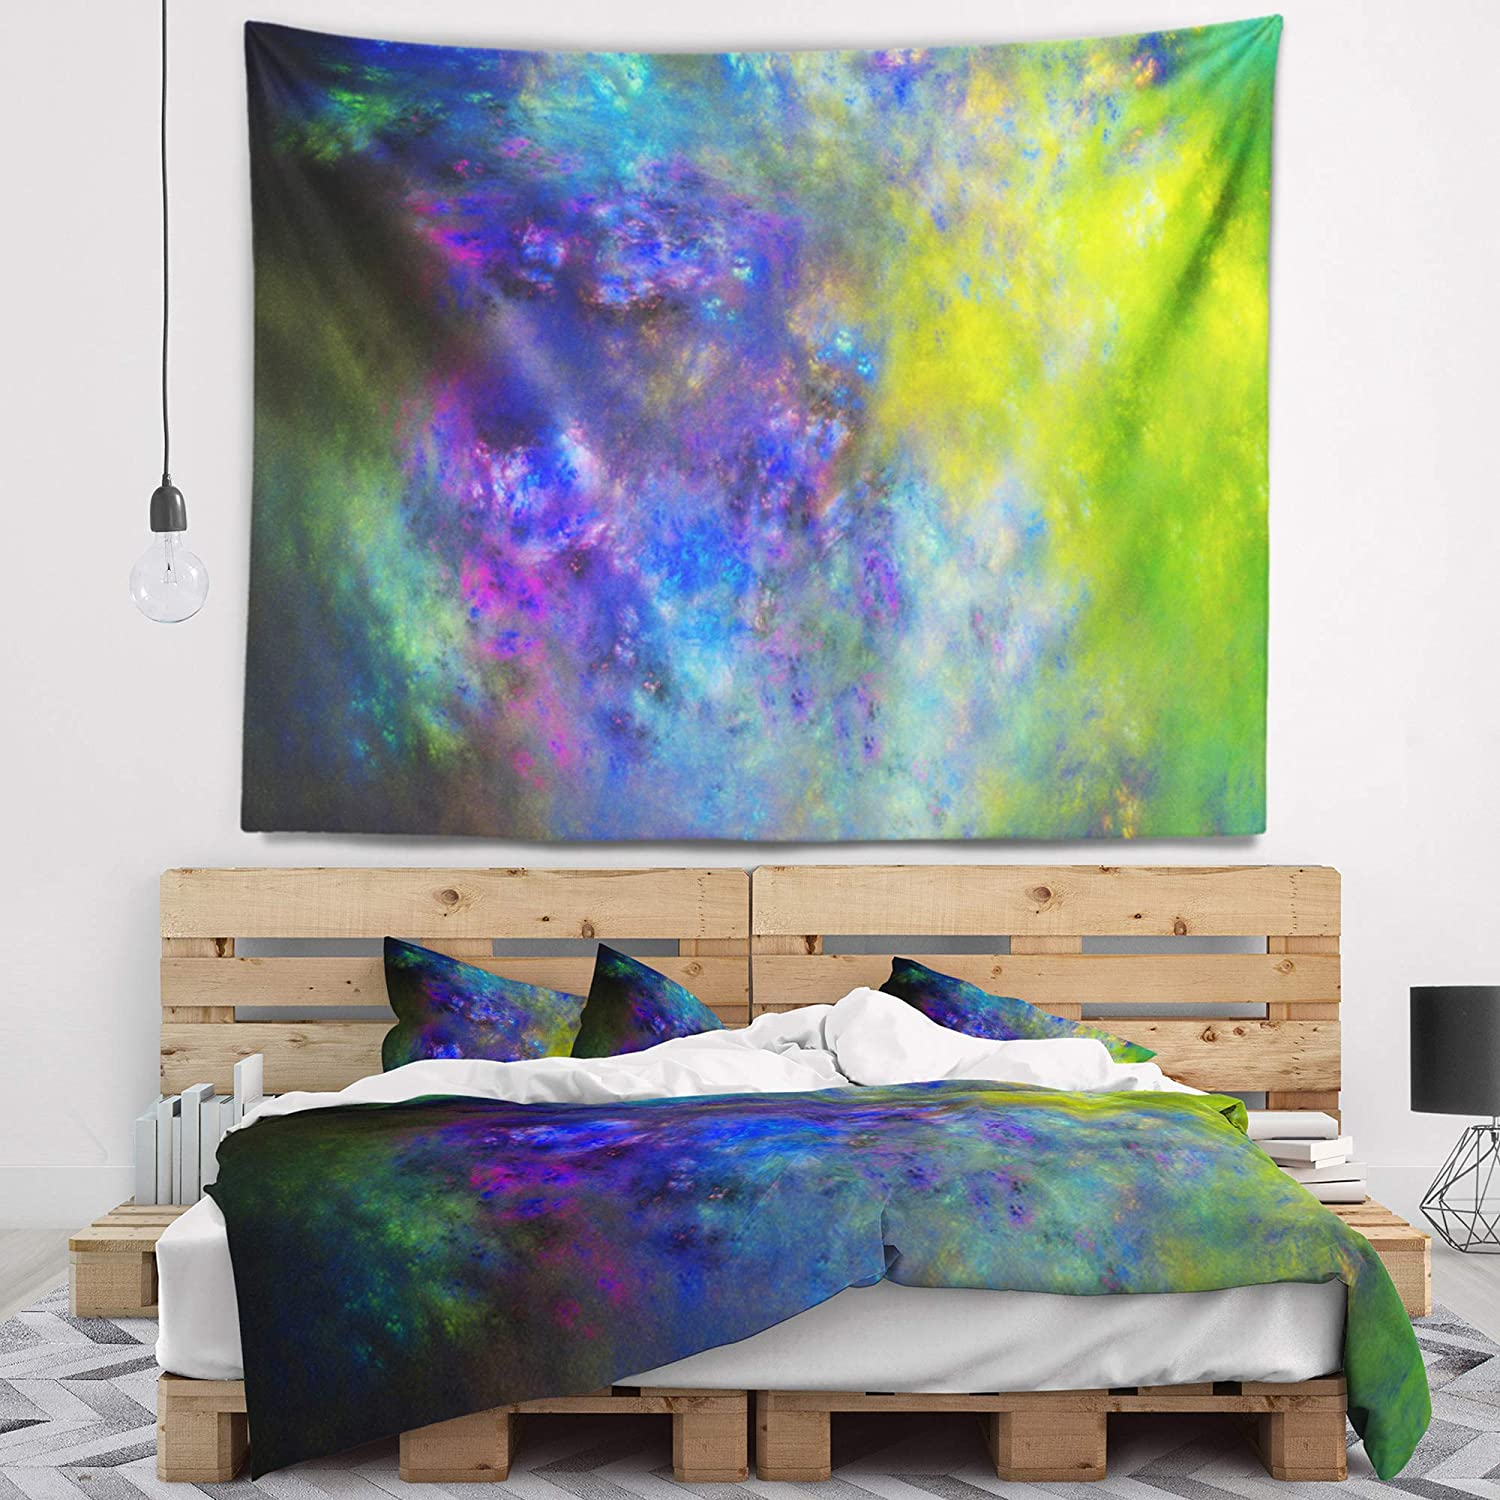 Created On Lightweight Polyester Fabric 60 in Designart TAP16214-60-50  Blue Green Starry Fractal Sky Abstract Blanket D/écor Art for Home and Office Wall Tapestry Large x 50 in